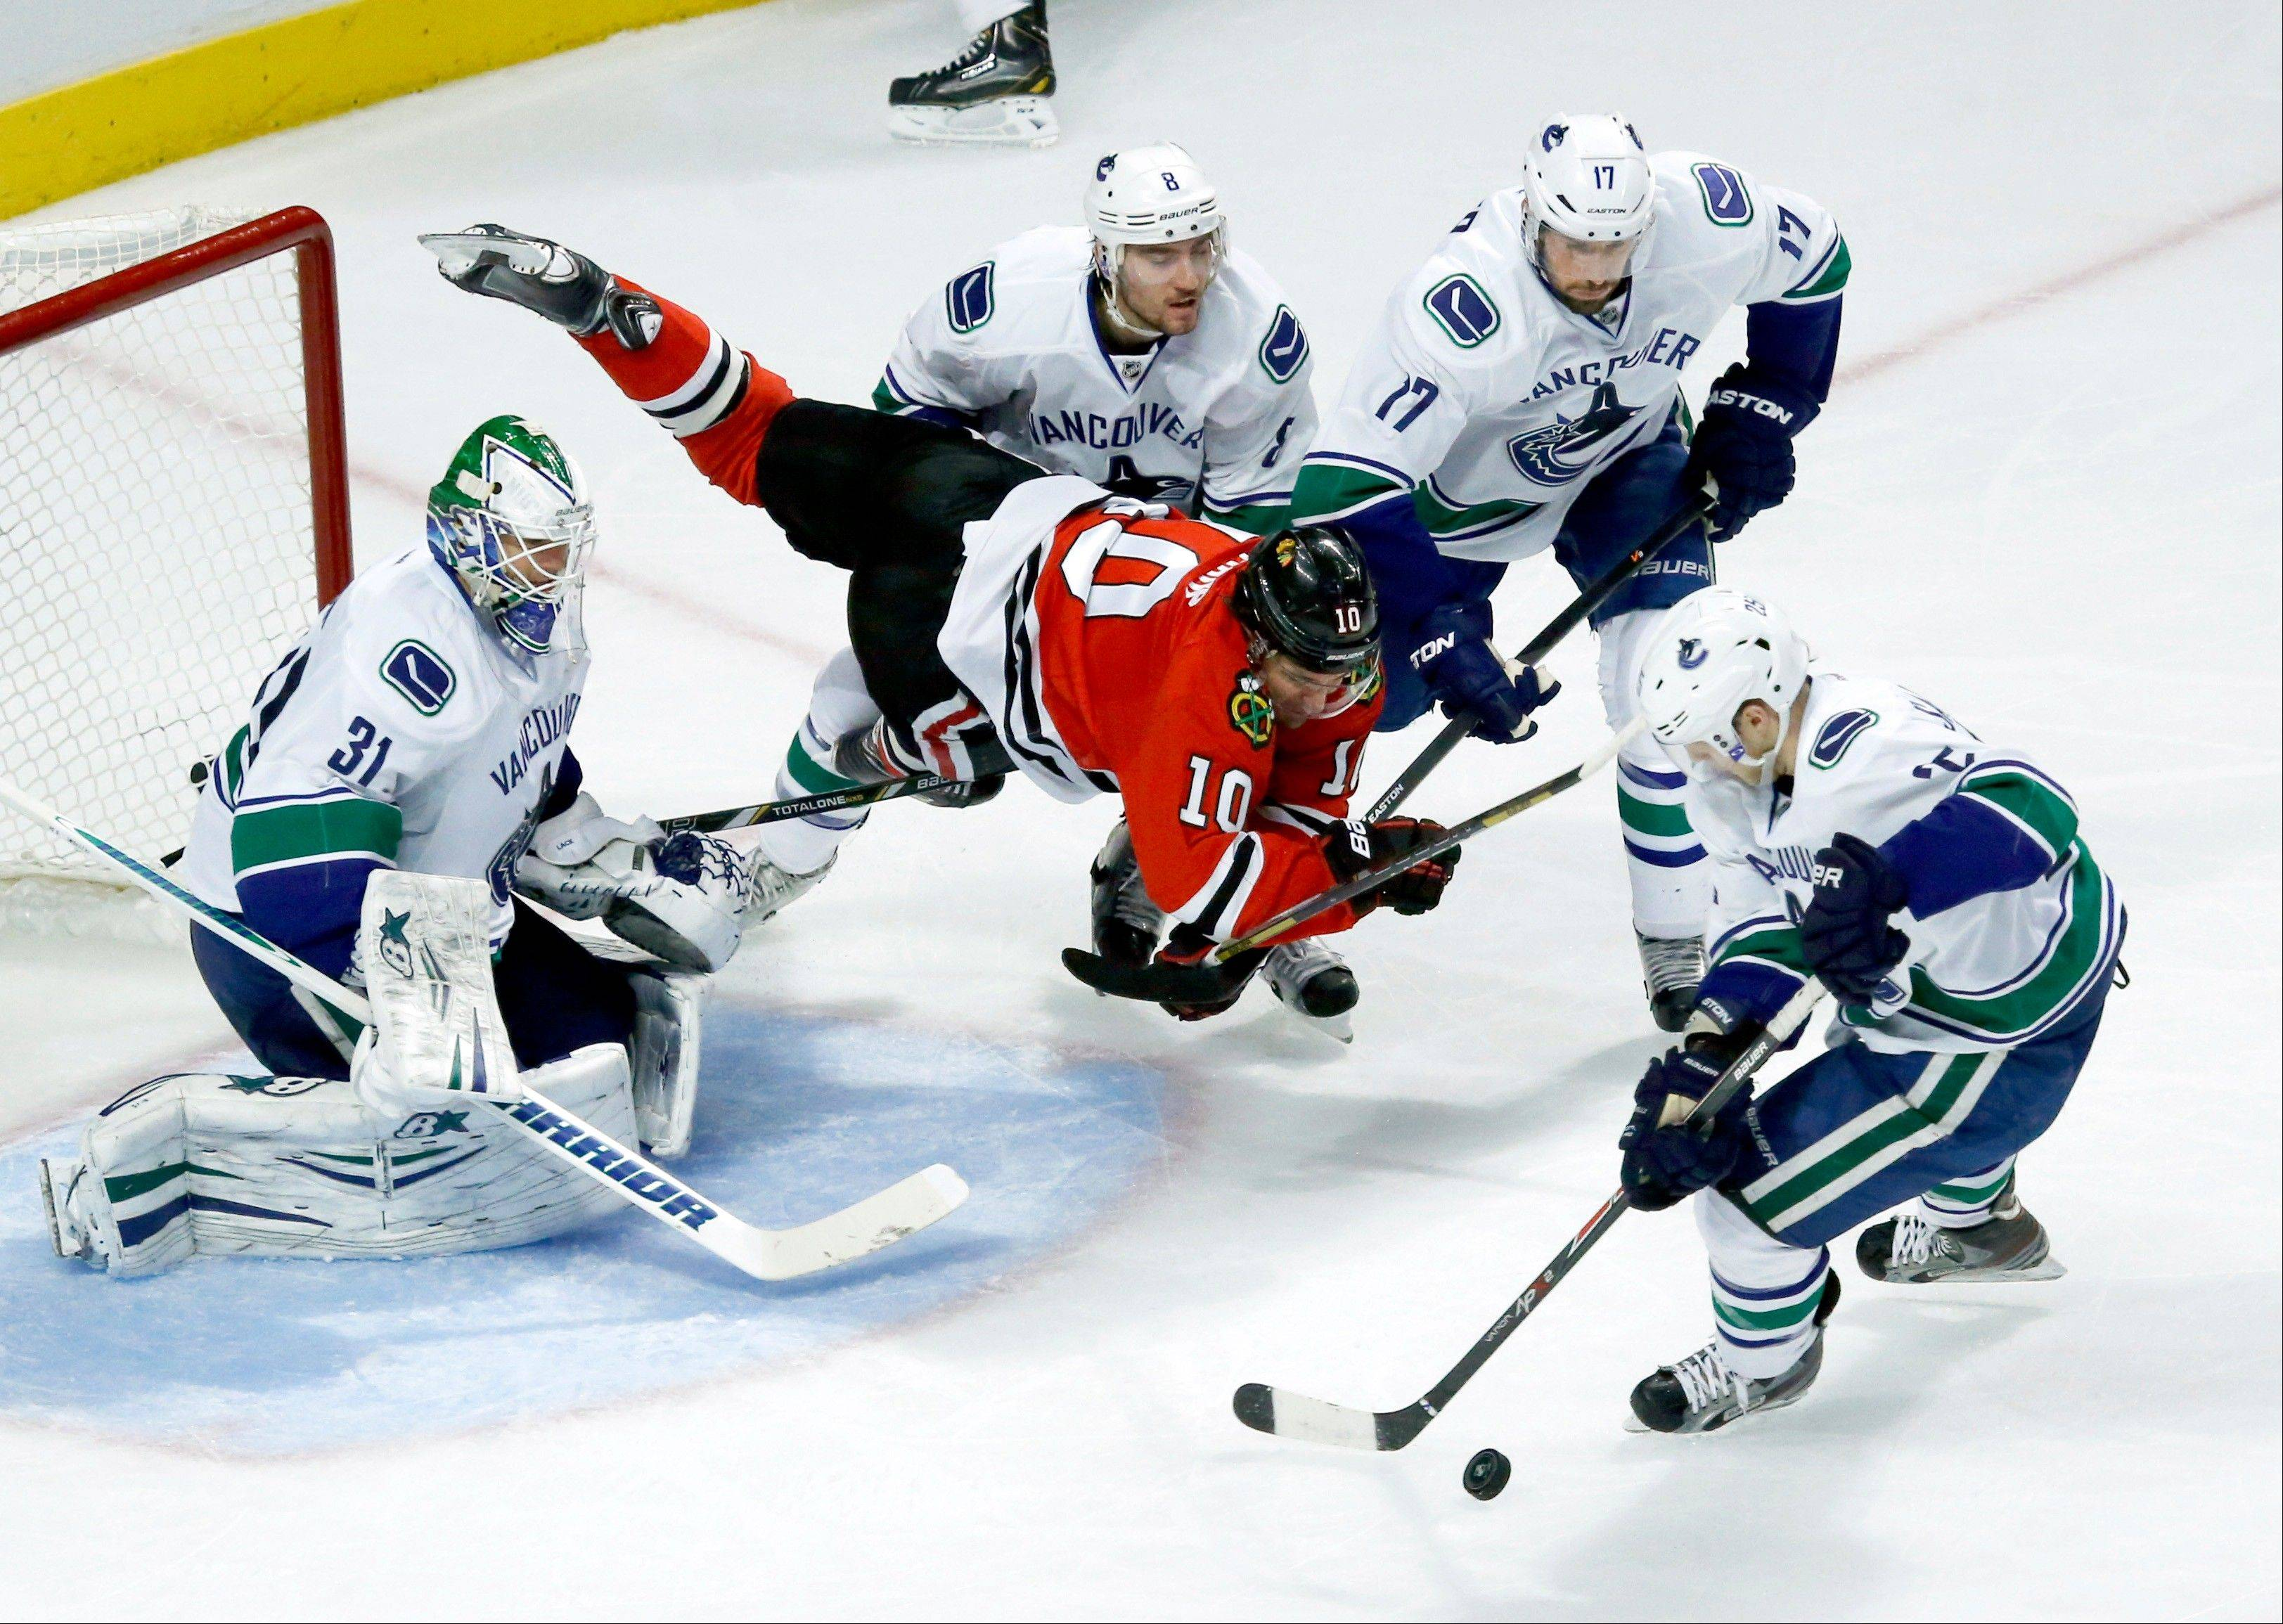 Canucks center Mike Santorelli, right, clears the puck after the Blackhawks' Patrick Sharp tried to split the defense of goalie Eddie Lack, Chris Tanev (8) and Ryan Kesler (17) in the third period Friday night.